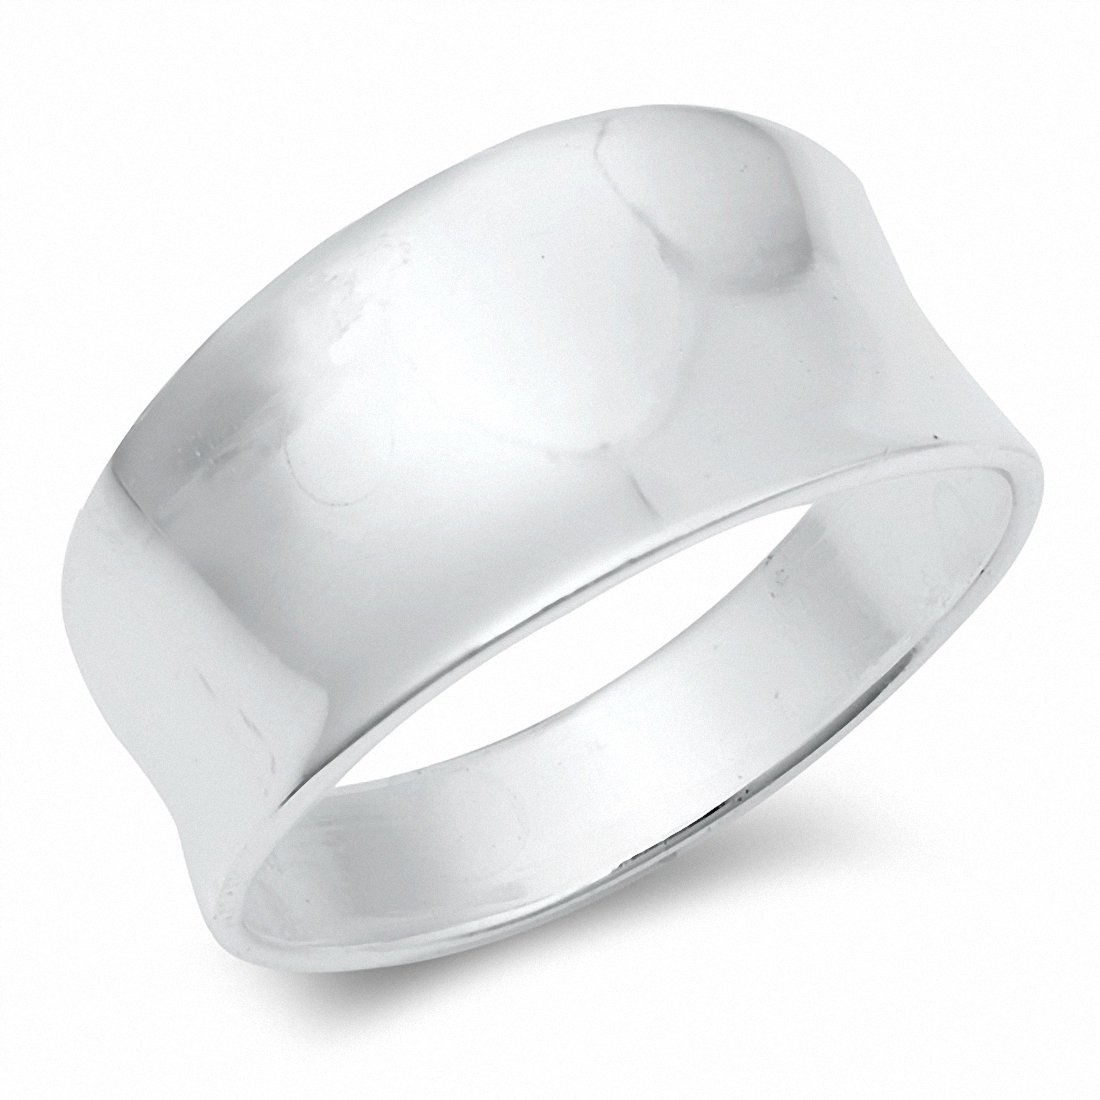 Concave Design Band Ring 10mm Solid 925 Sterling Silver Choose Color